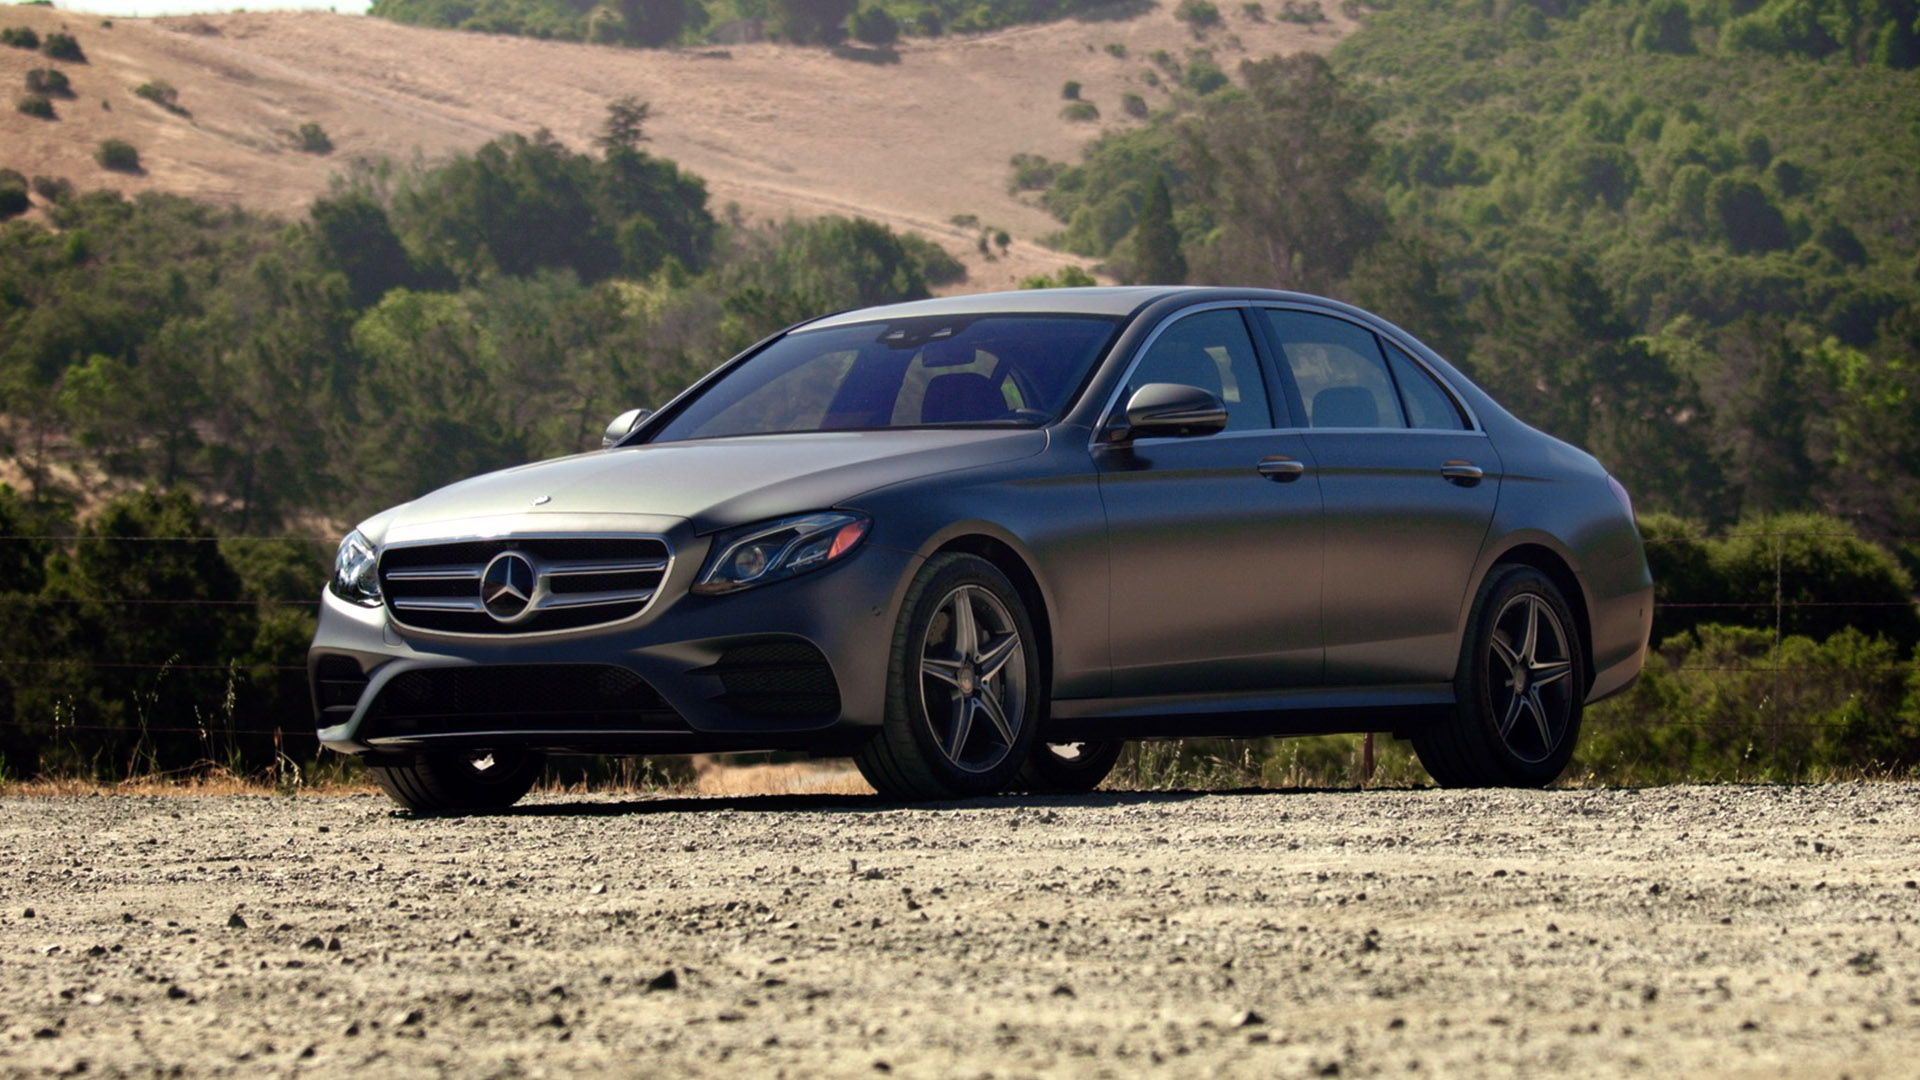 Video: 10th generation Mercedes-Benz E-class is smart and stylish